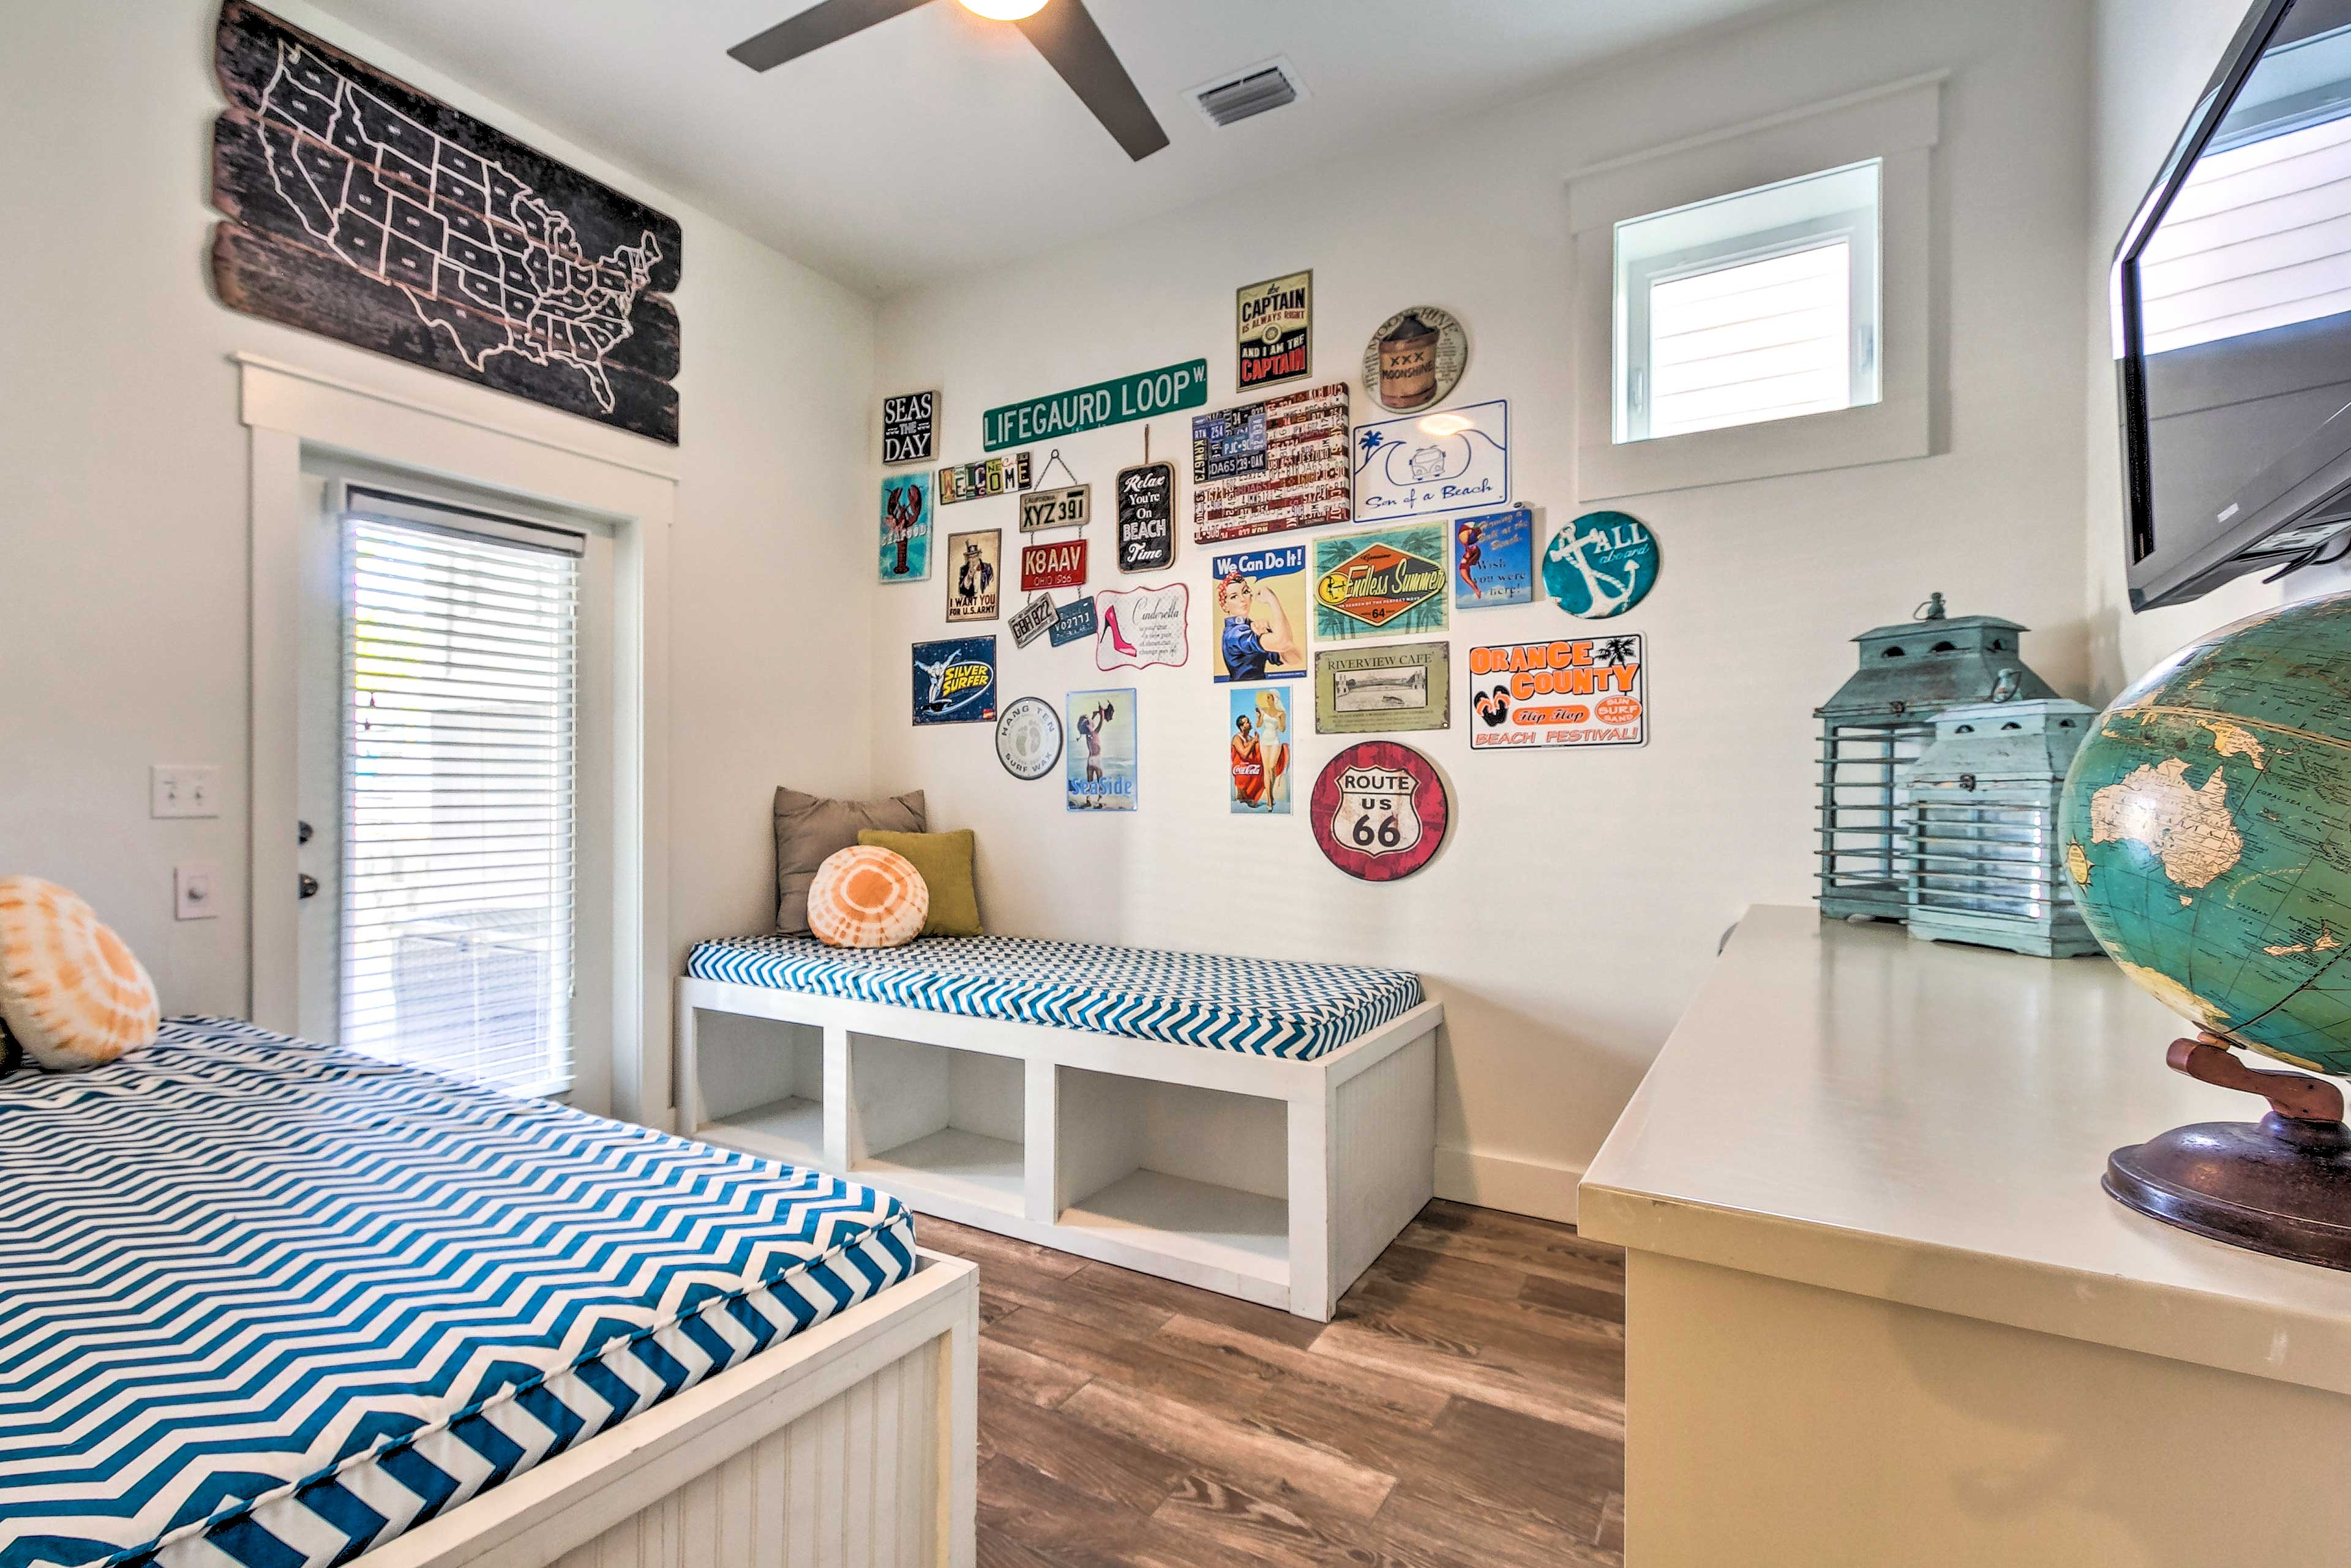 This bonus room provides 2 twin beds for any small kids in your crew!